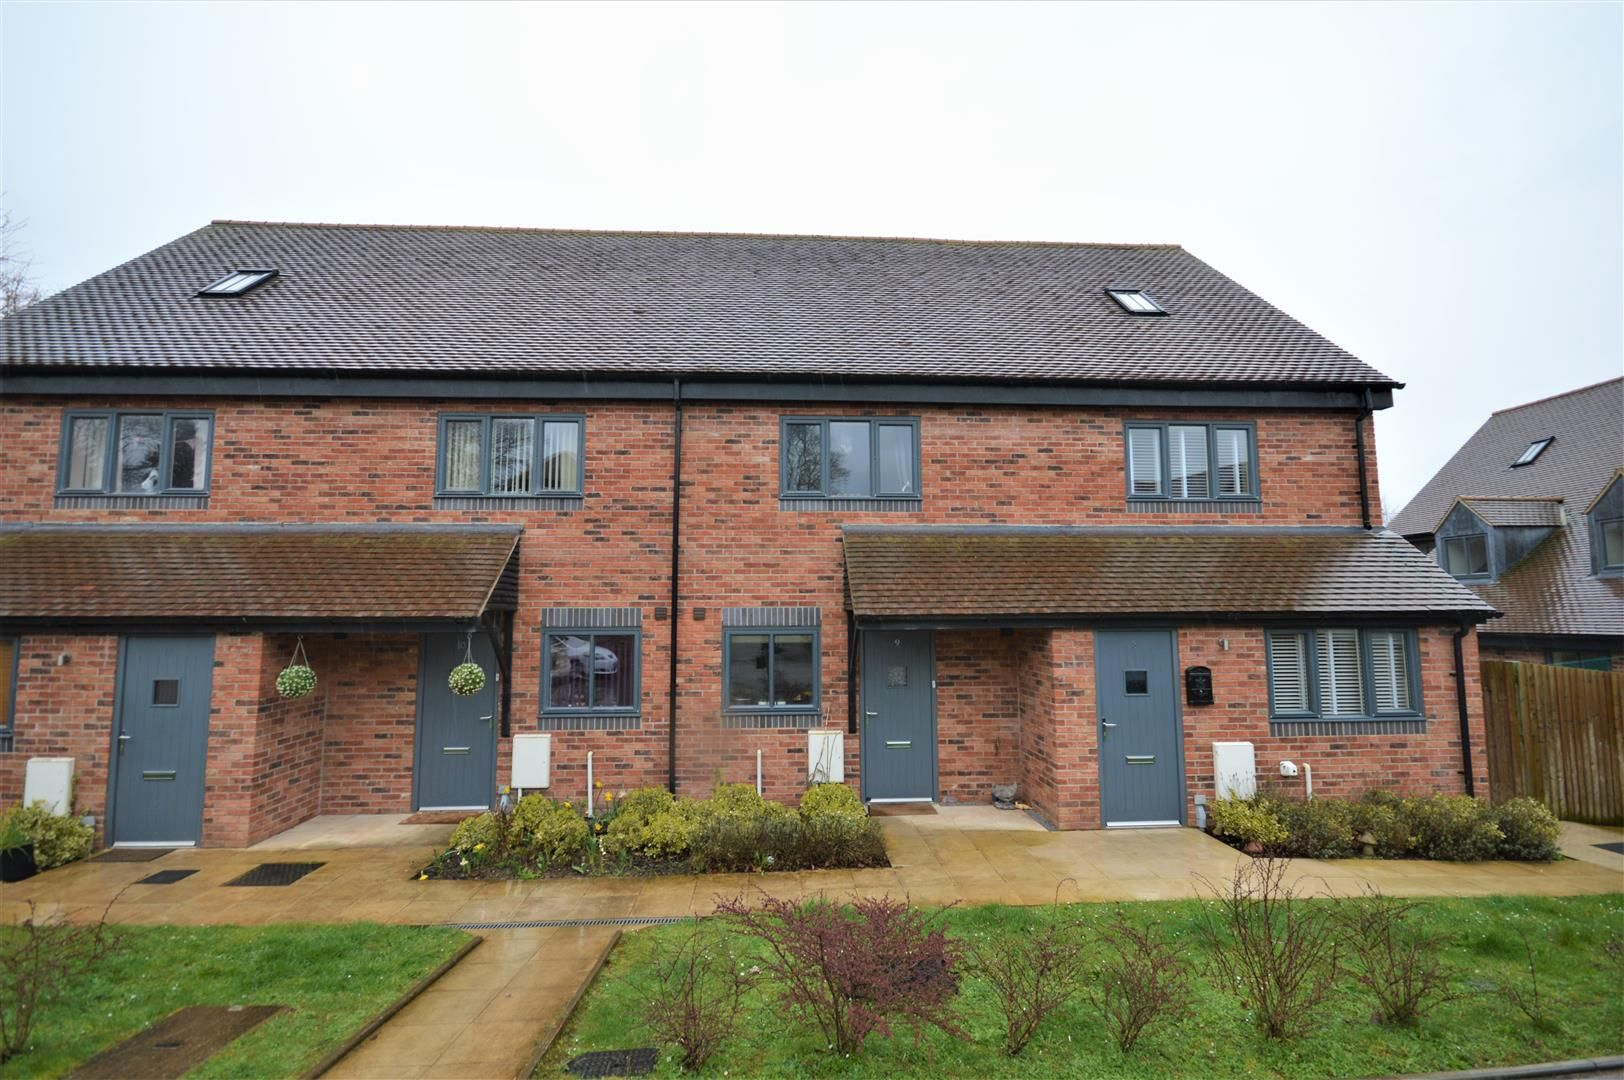 2 bed terraced for sale in Bishops Frome, WR6